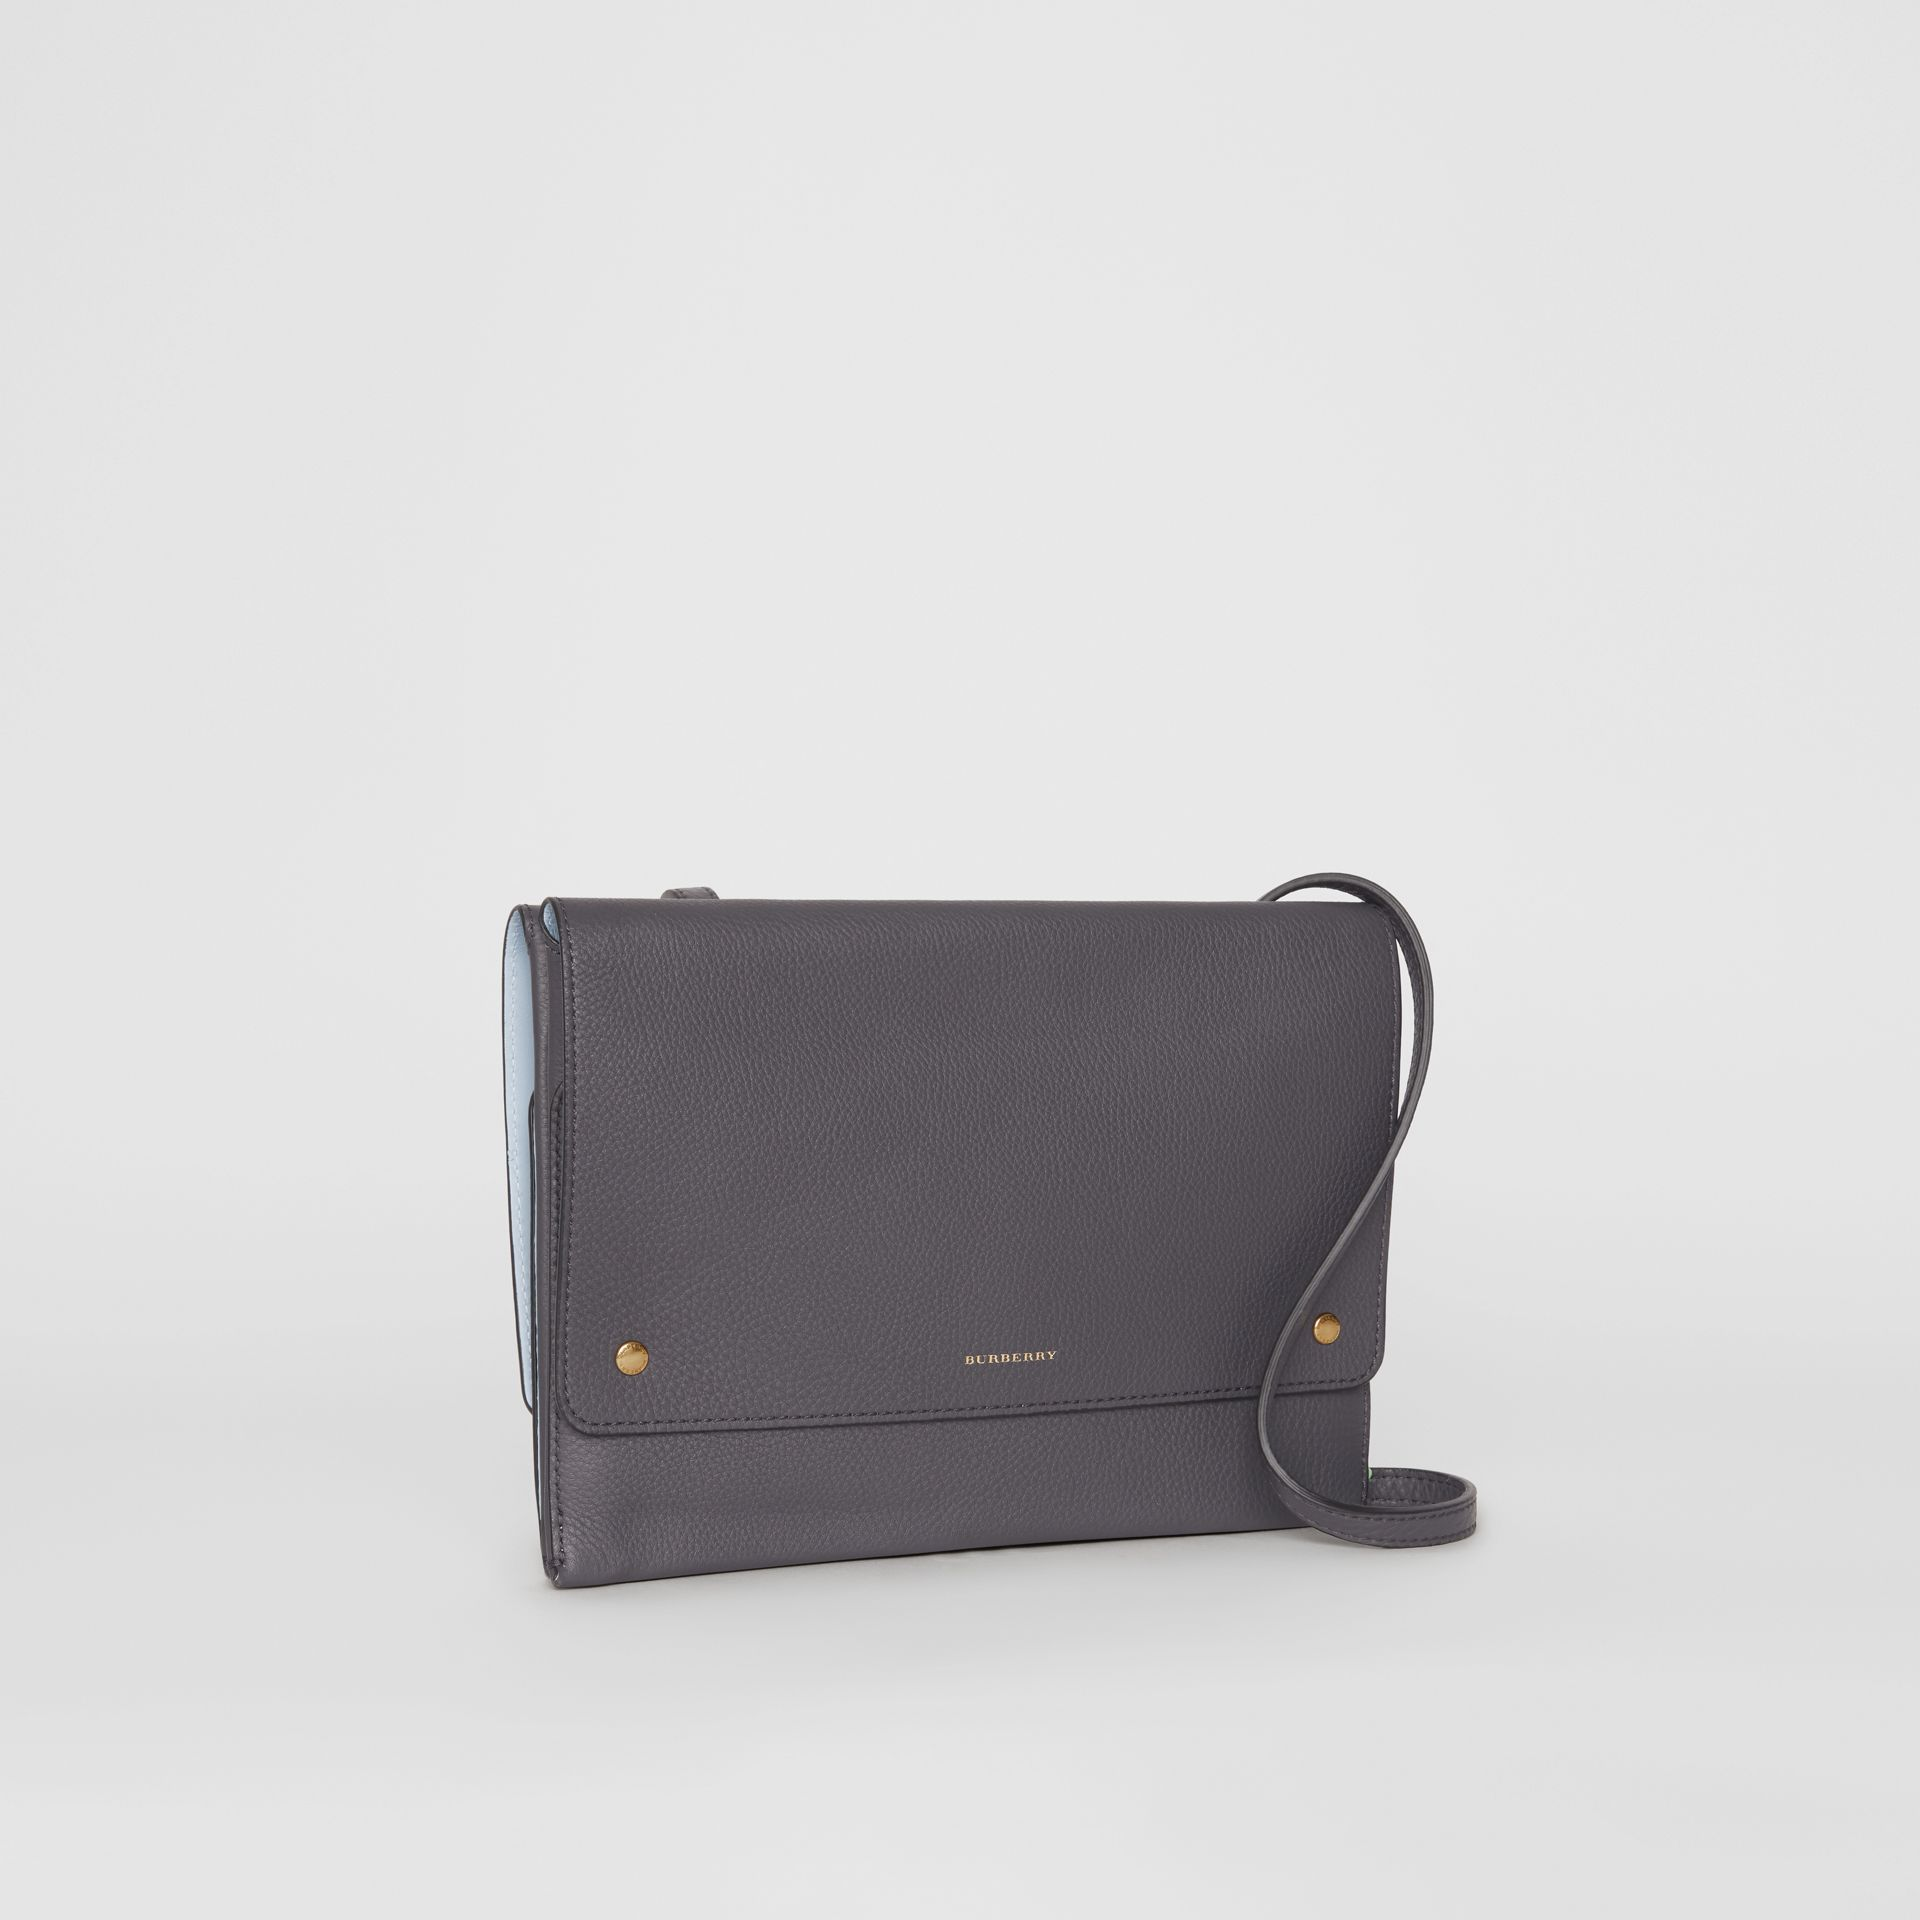 Leather Envelope Crossbody Bag in Charcoal Grey - Women | Burberry Australia - gallery image 4